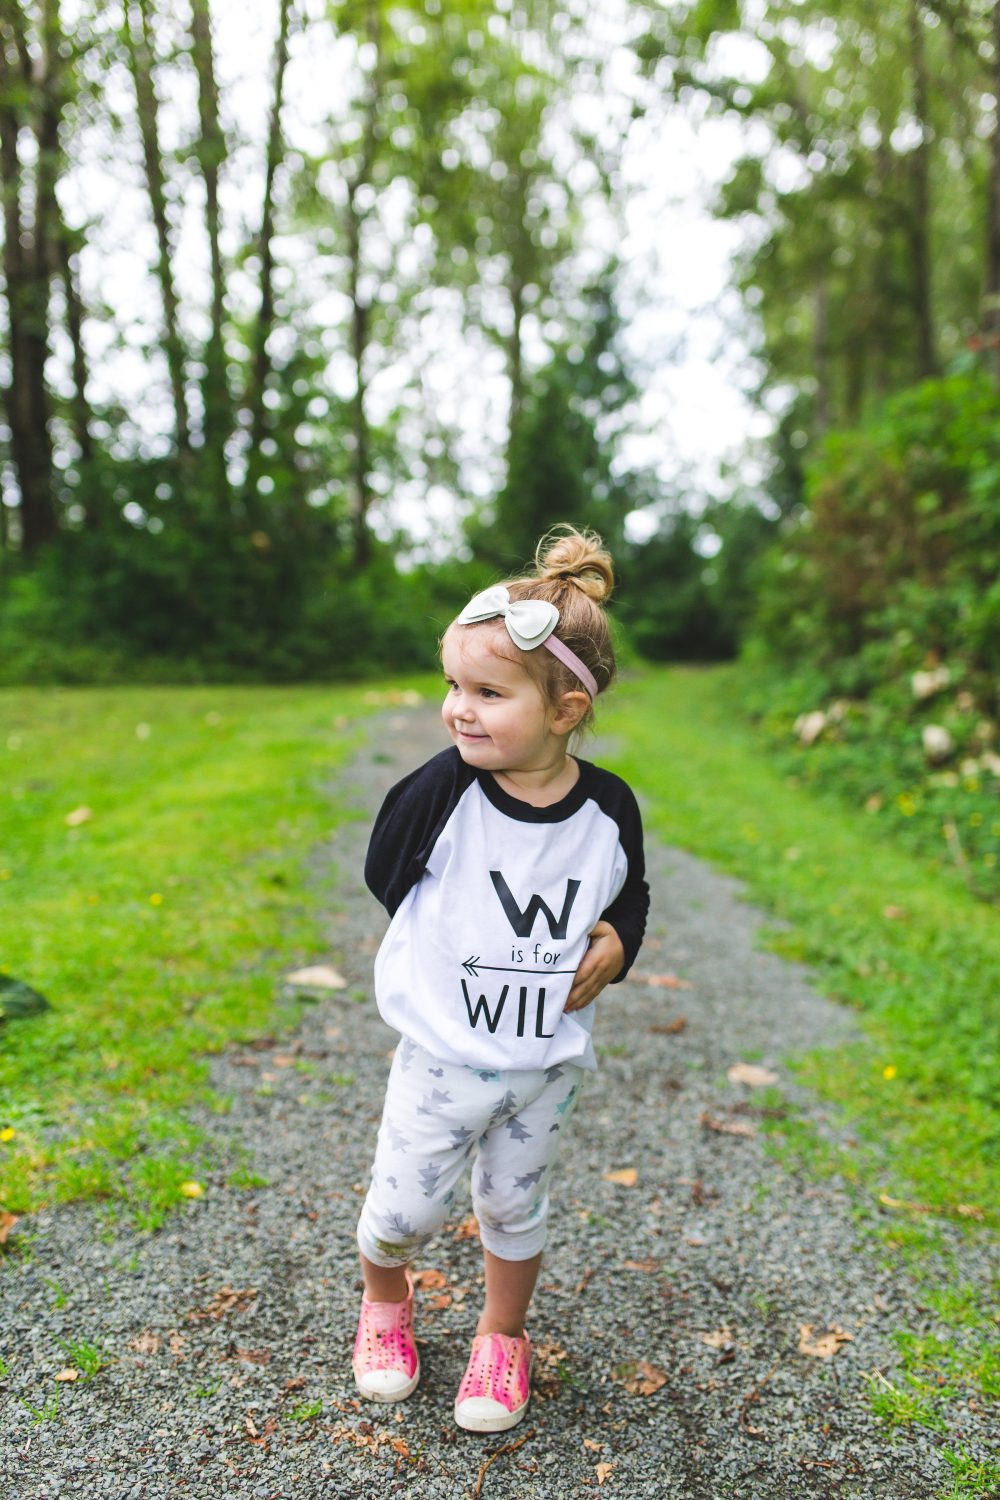 W is for Wild Kids Tshirt by The Blue Envelope